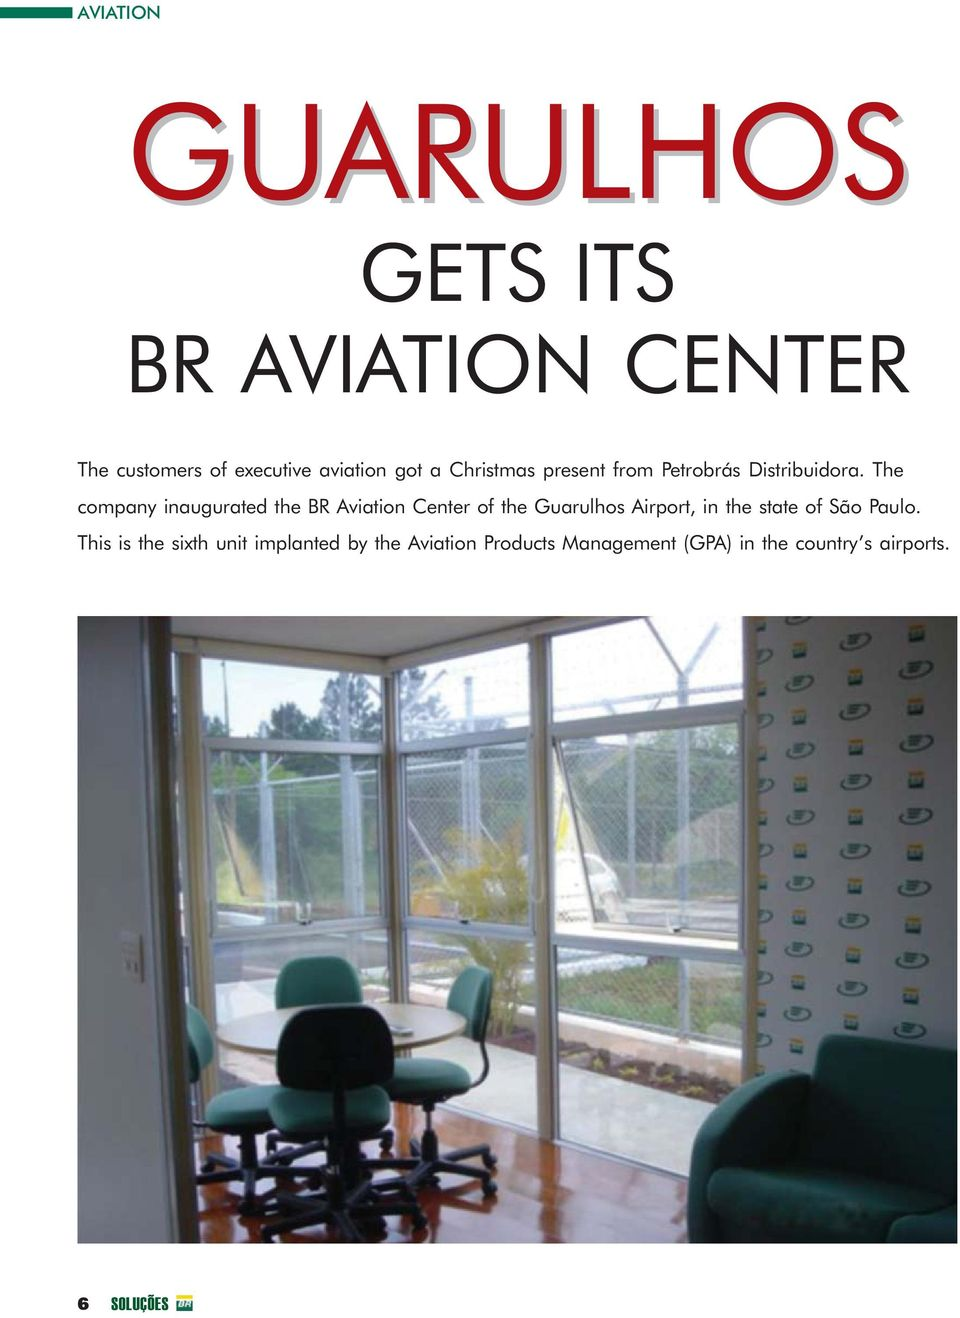 The company inaugurated the BR Aviation Center of the Guarulhos Airport, in the